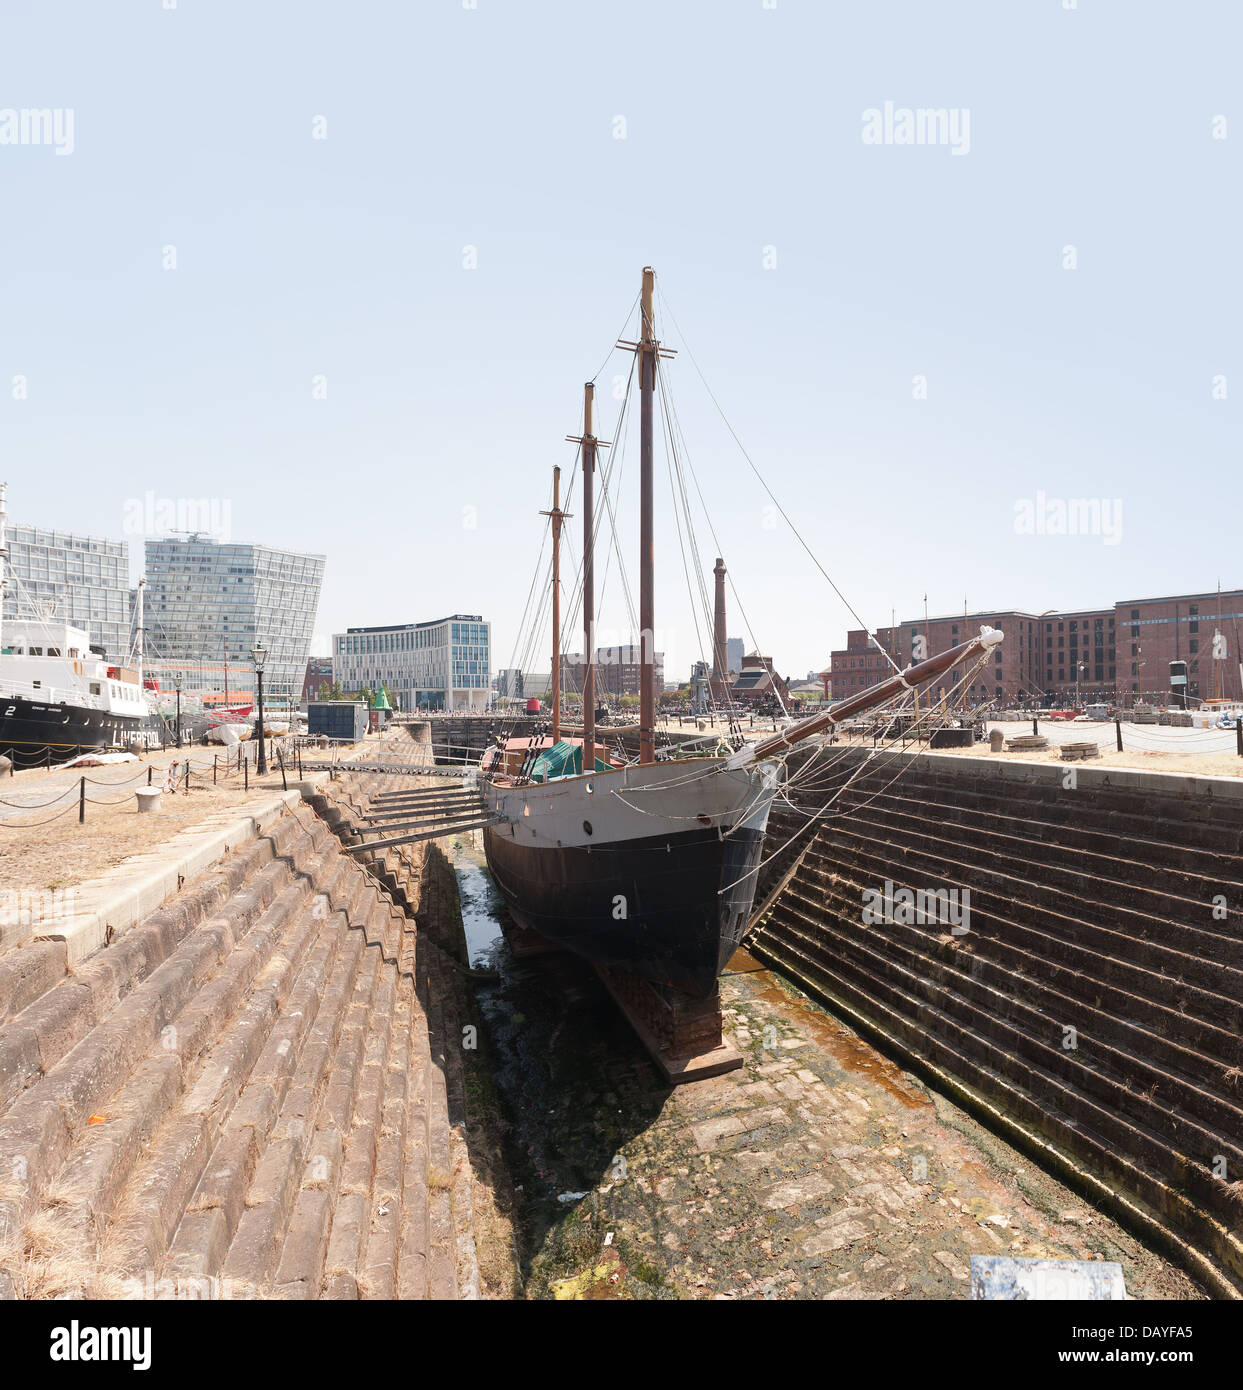 The De Wadden trading sailing ship boat in Canning dry dock against modern rebuild skyline contrasts older traditional - Stock Image